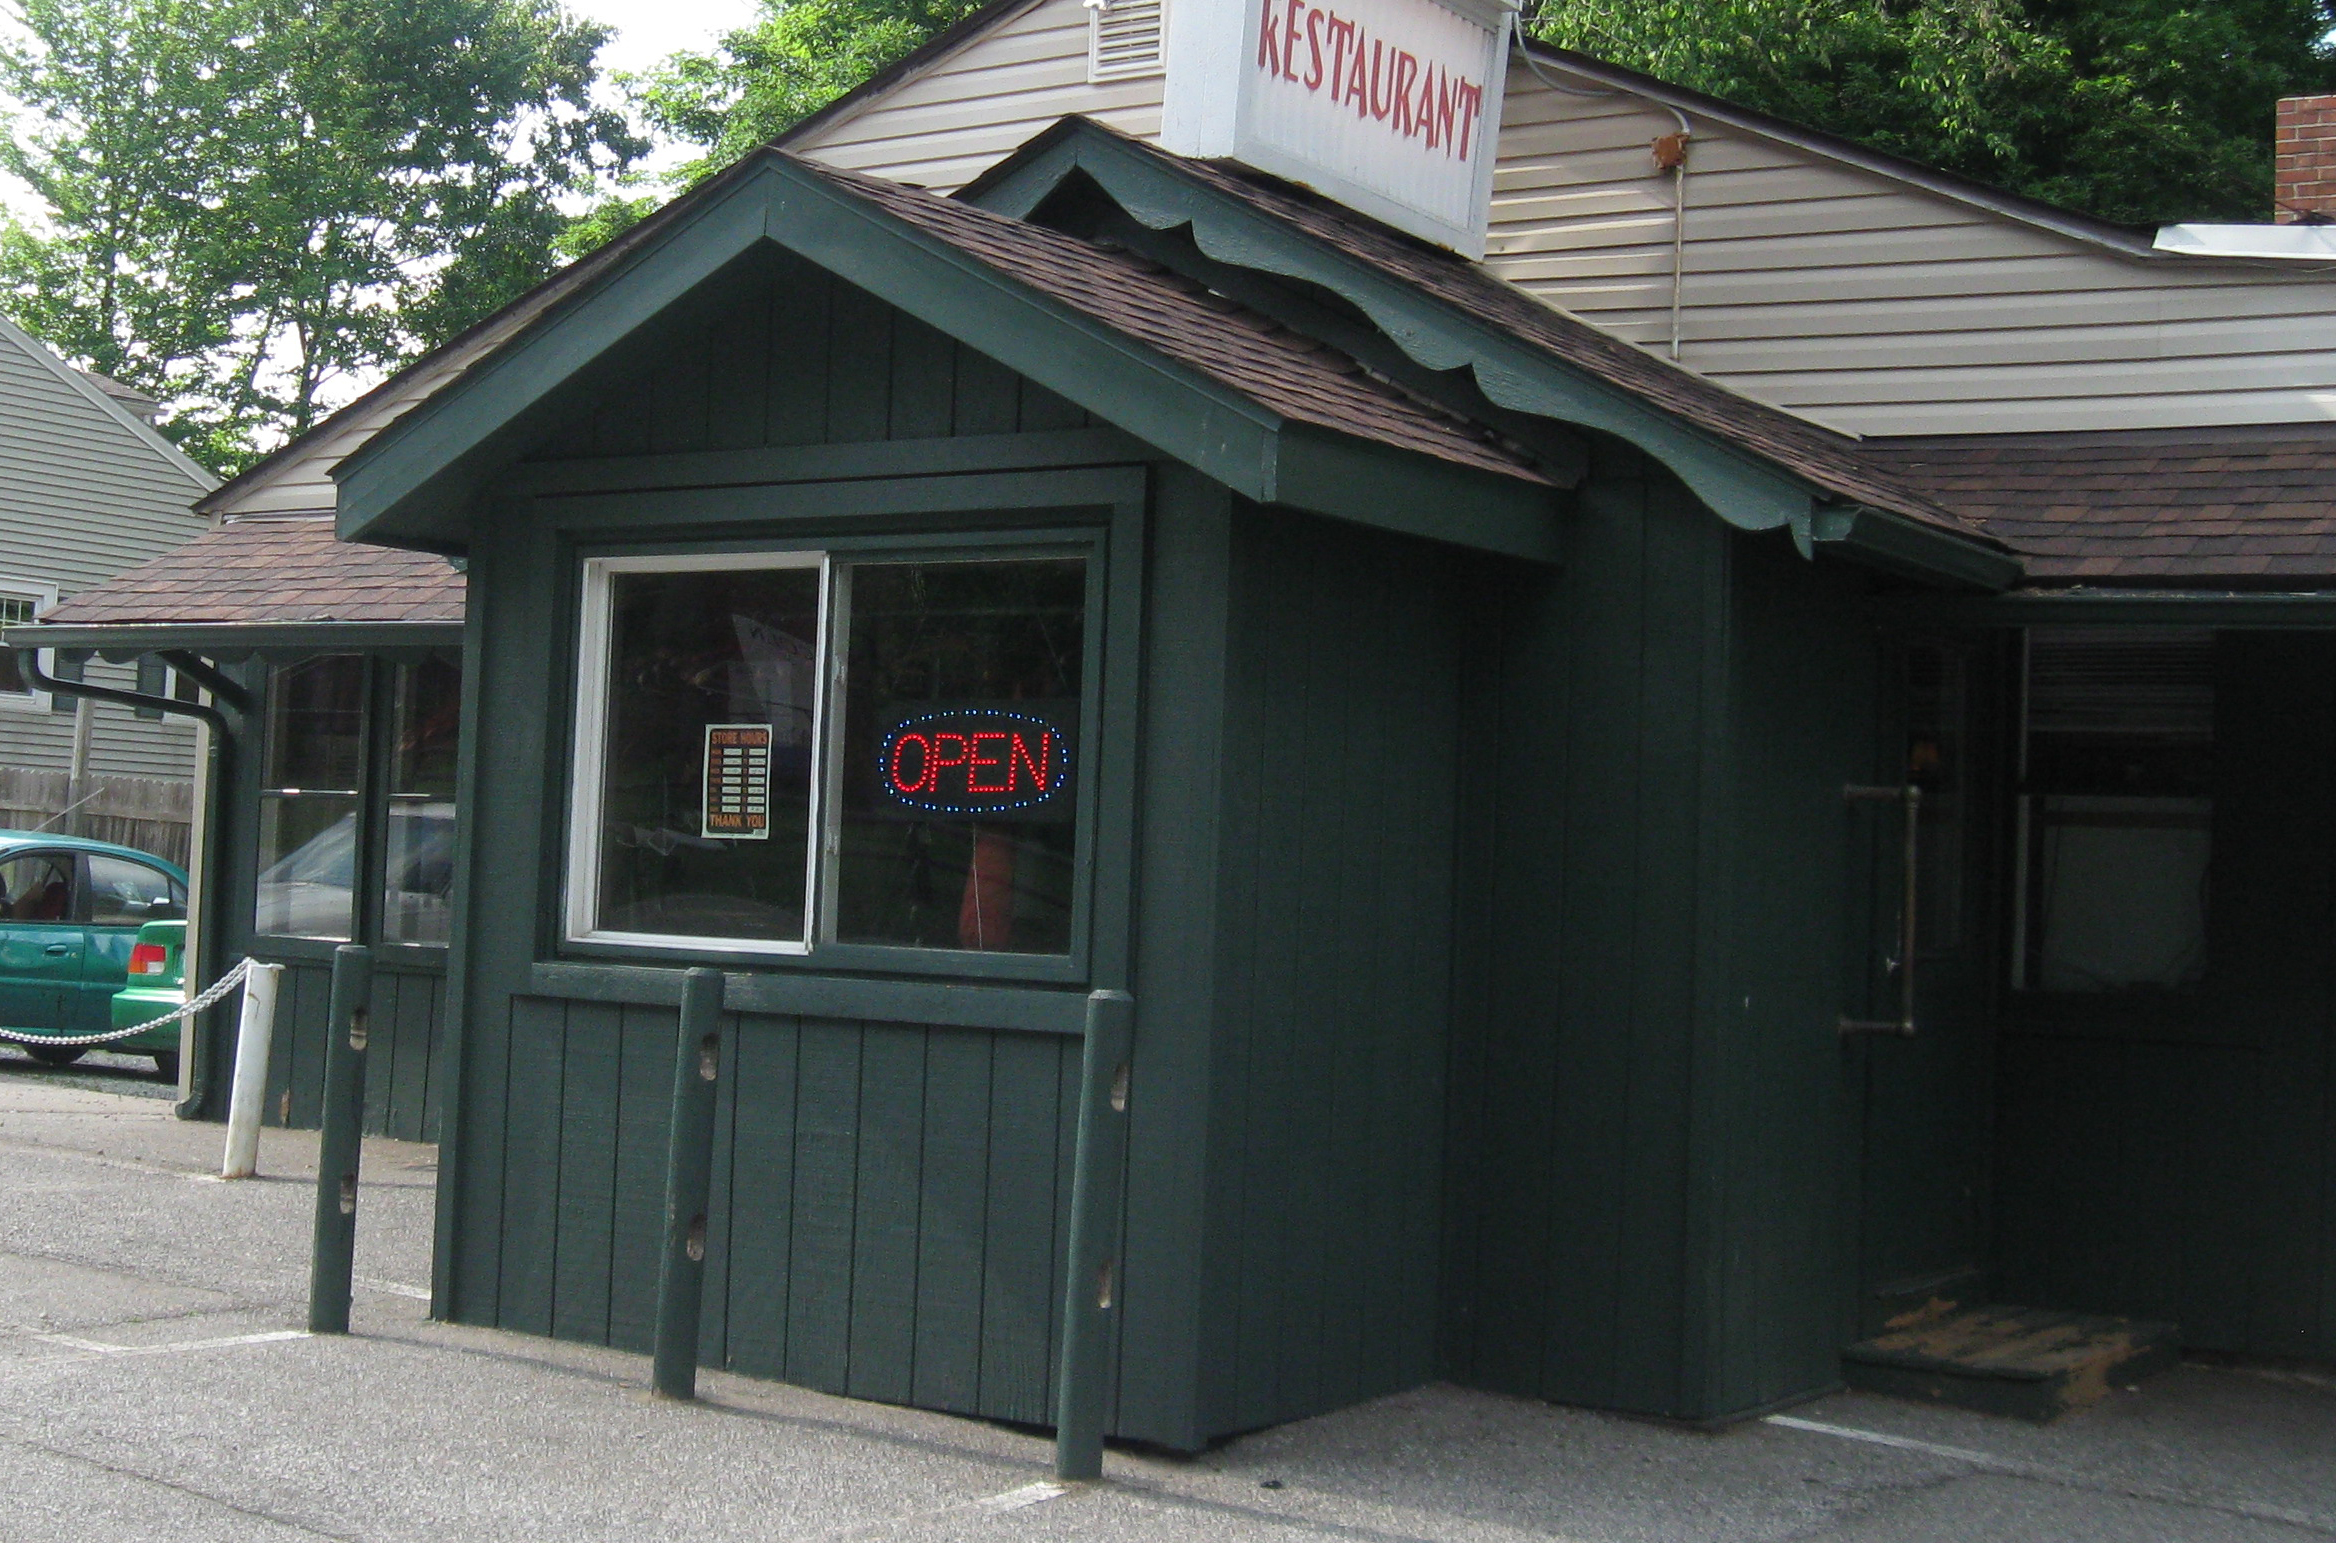 Online Menu of Two Cousins Pizza - - - - - - - - CLOSED ...